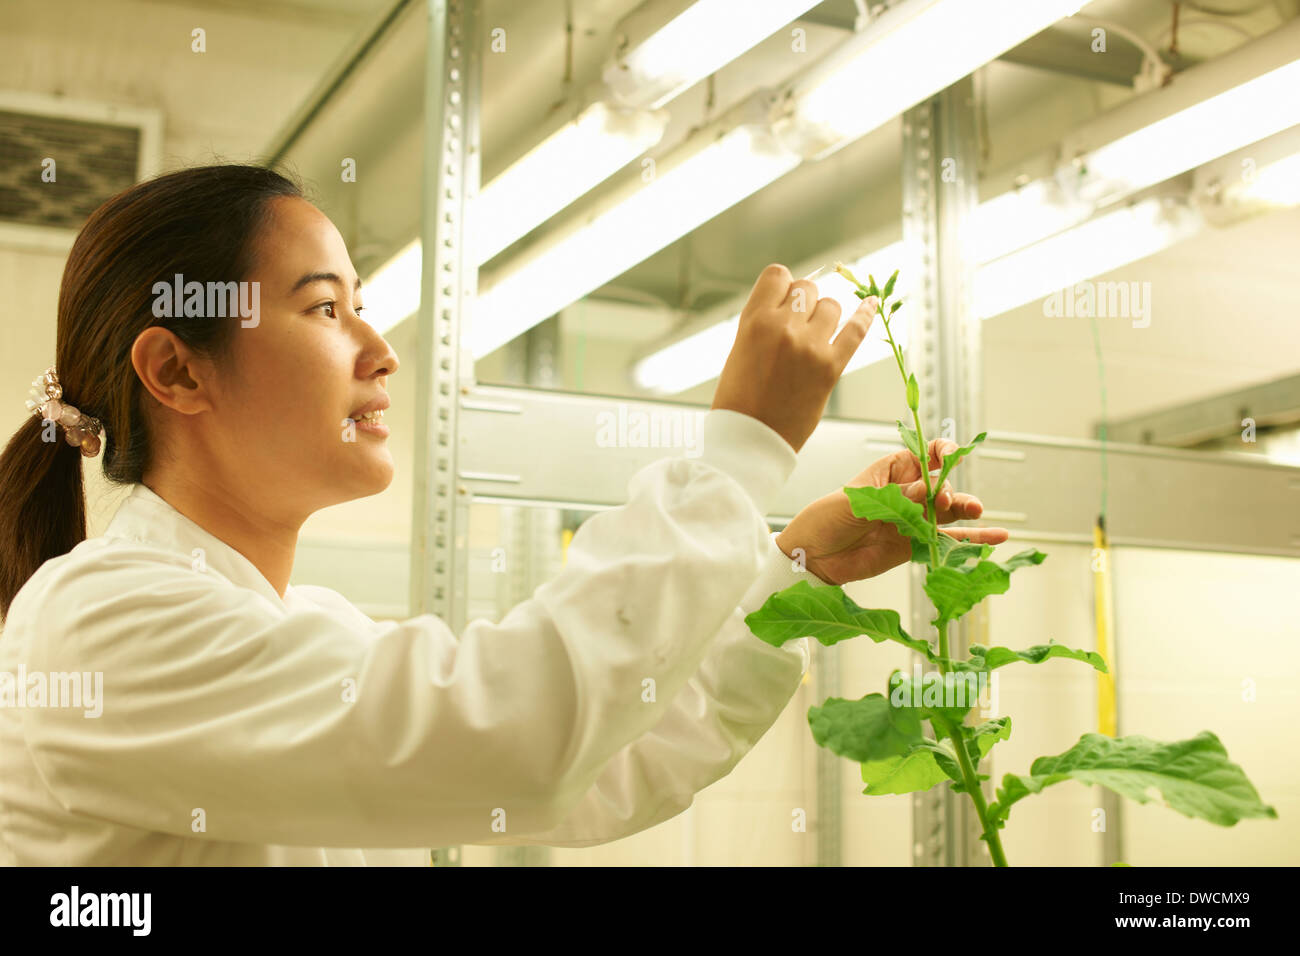 Female scientist picking sample from plant - Stock Image